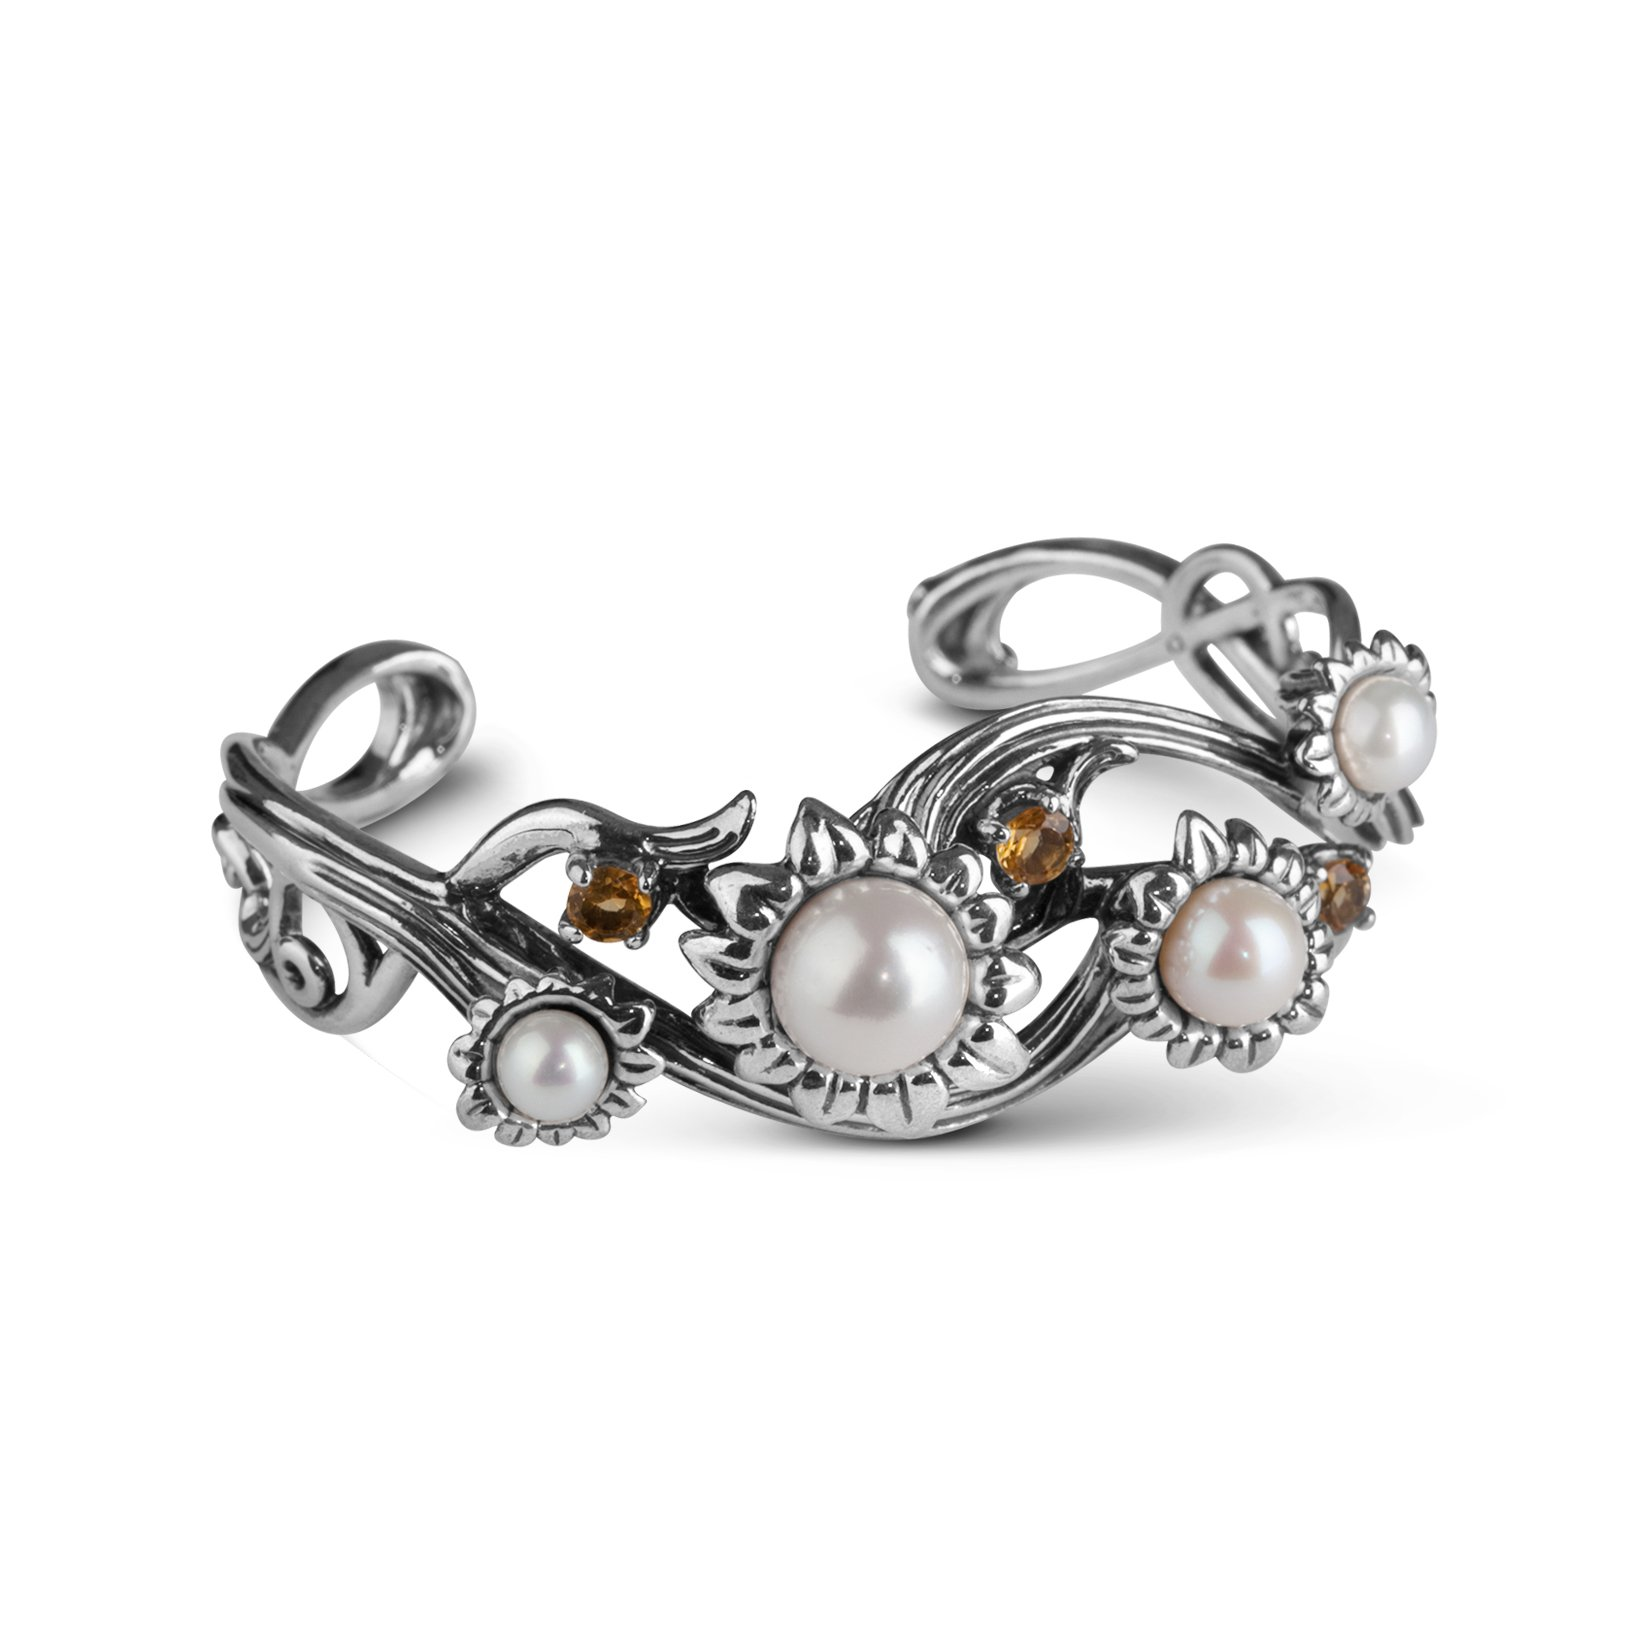 Purity and Promise Cultured Pearl and Citrine Cuff Bracelet